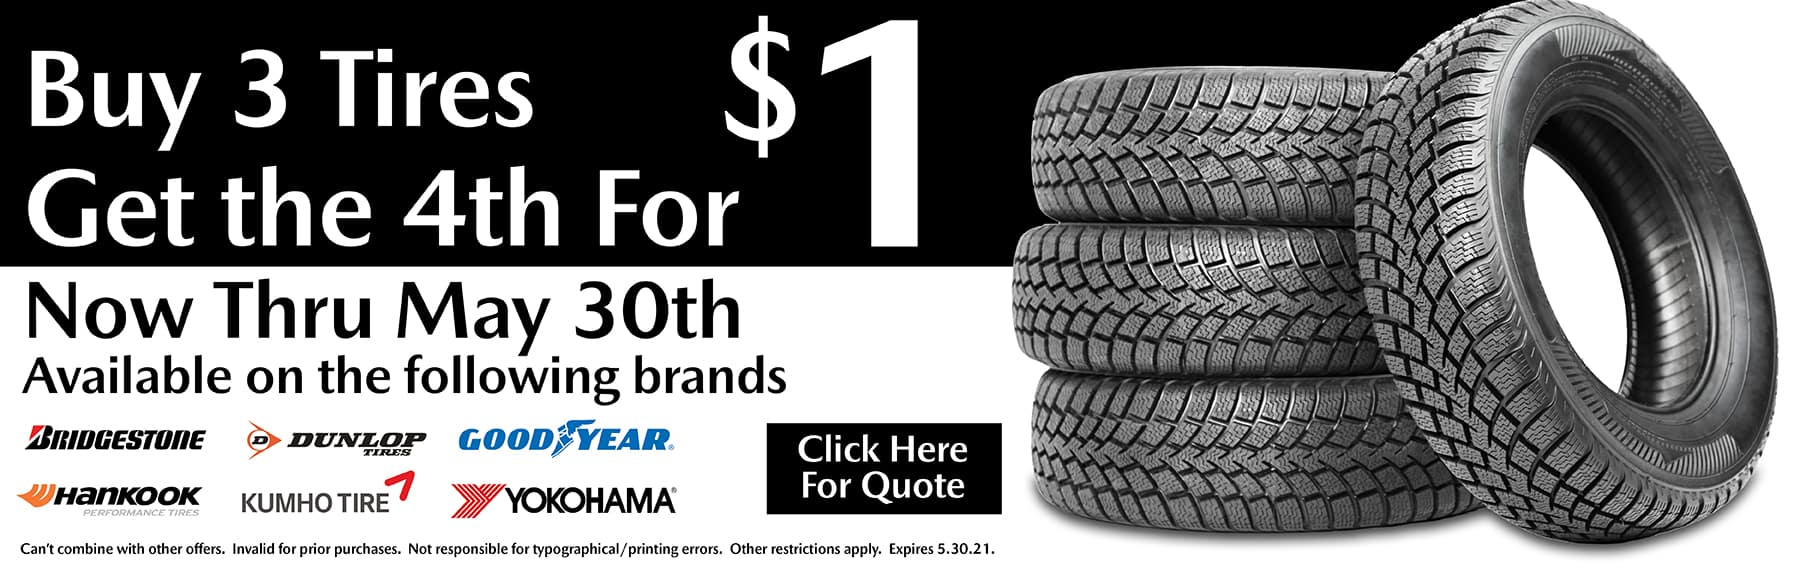 Buy 3 Tires, Get 4th for $1